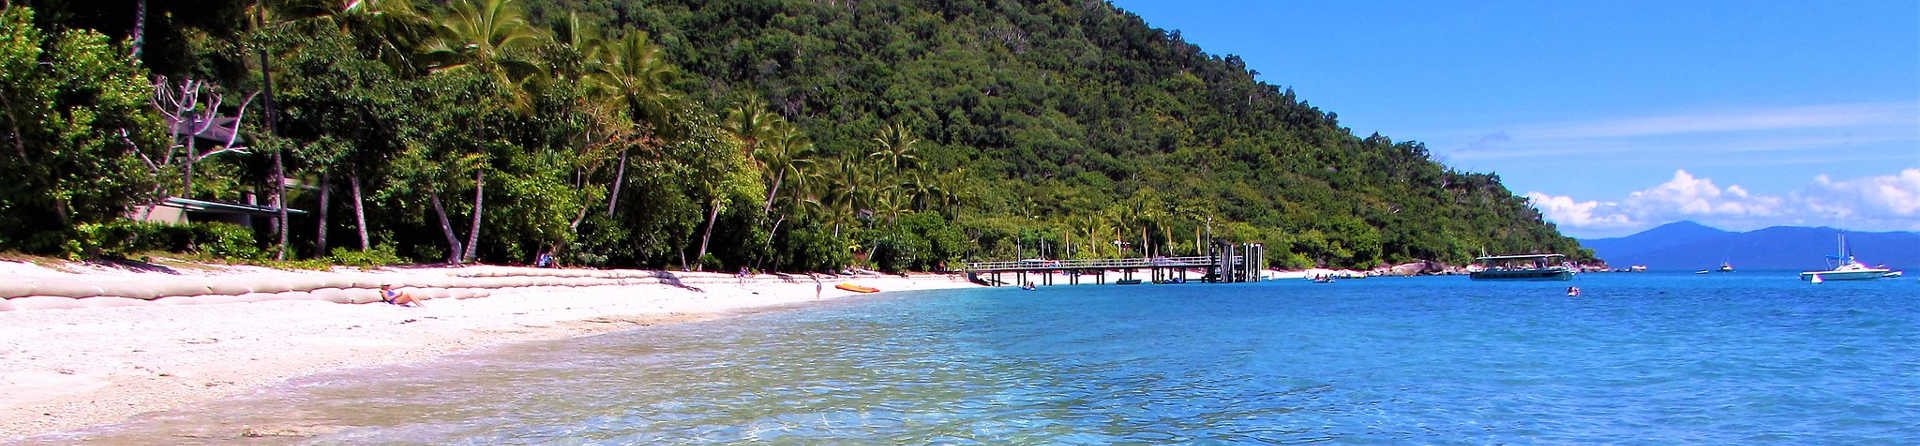 Can you visit the Great Barrier Reef from Cairns?